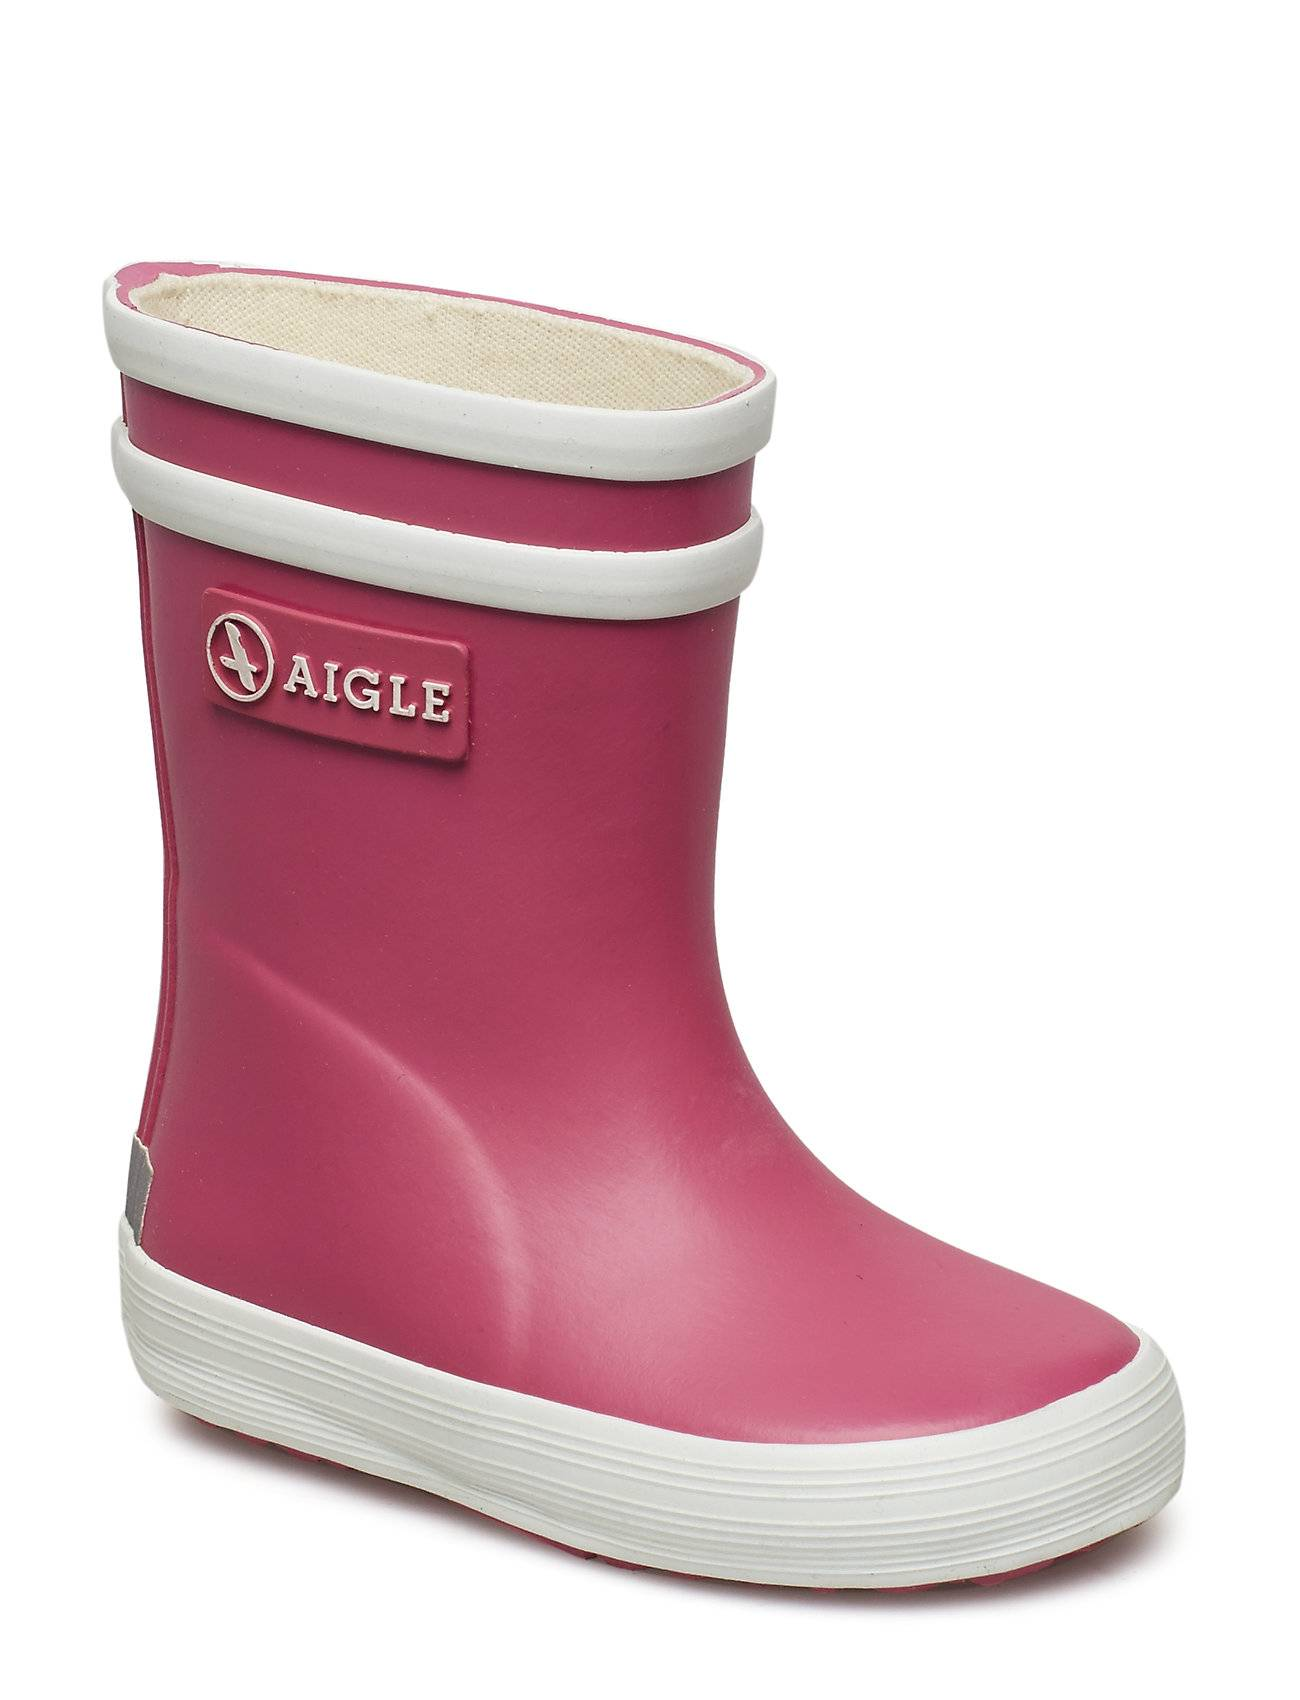 Aigle Ai Baby Flac Rose New